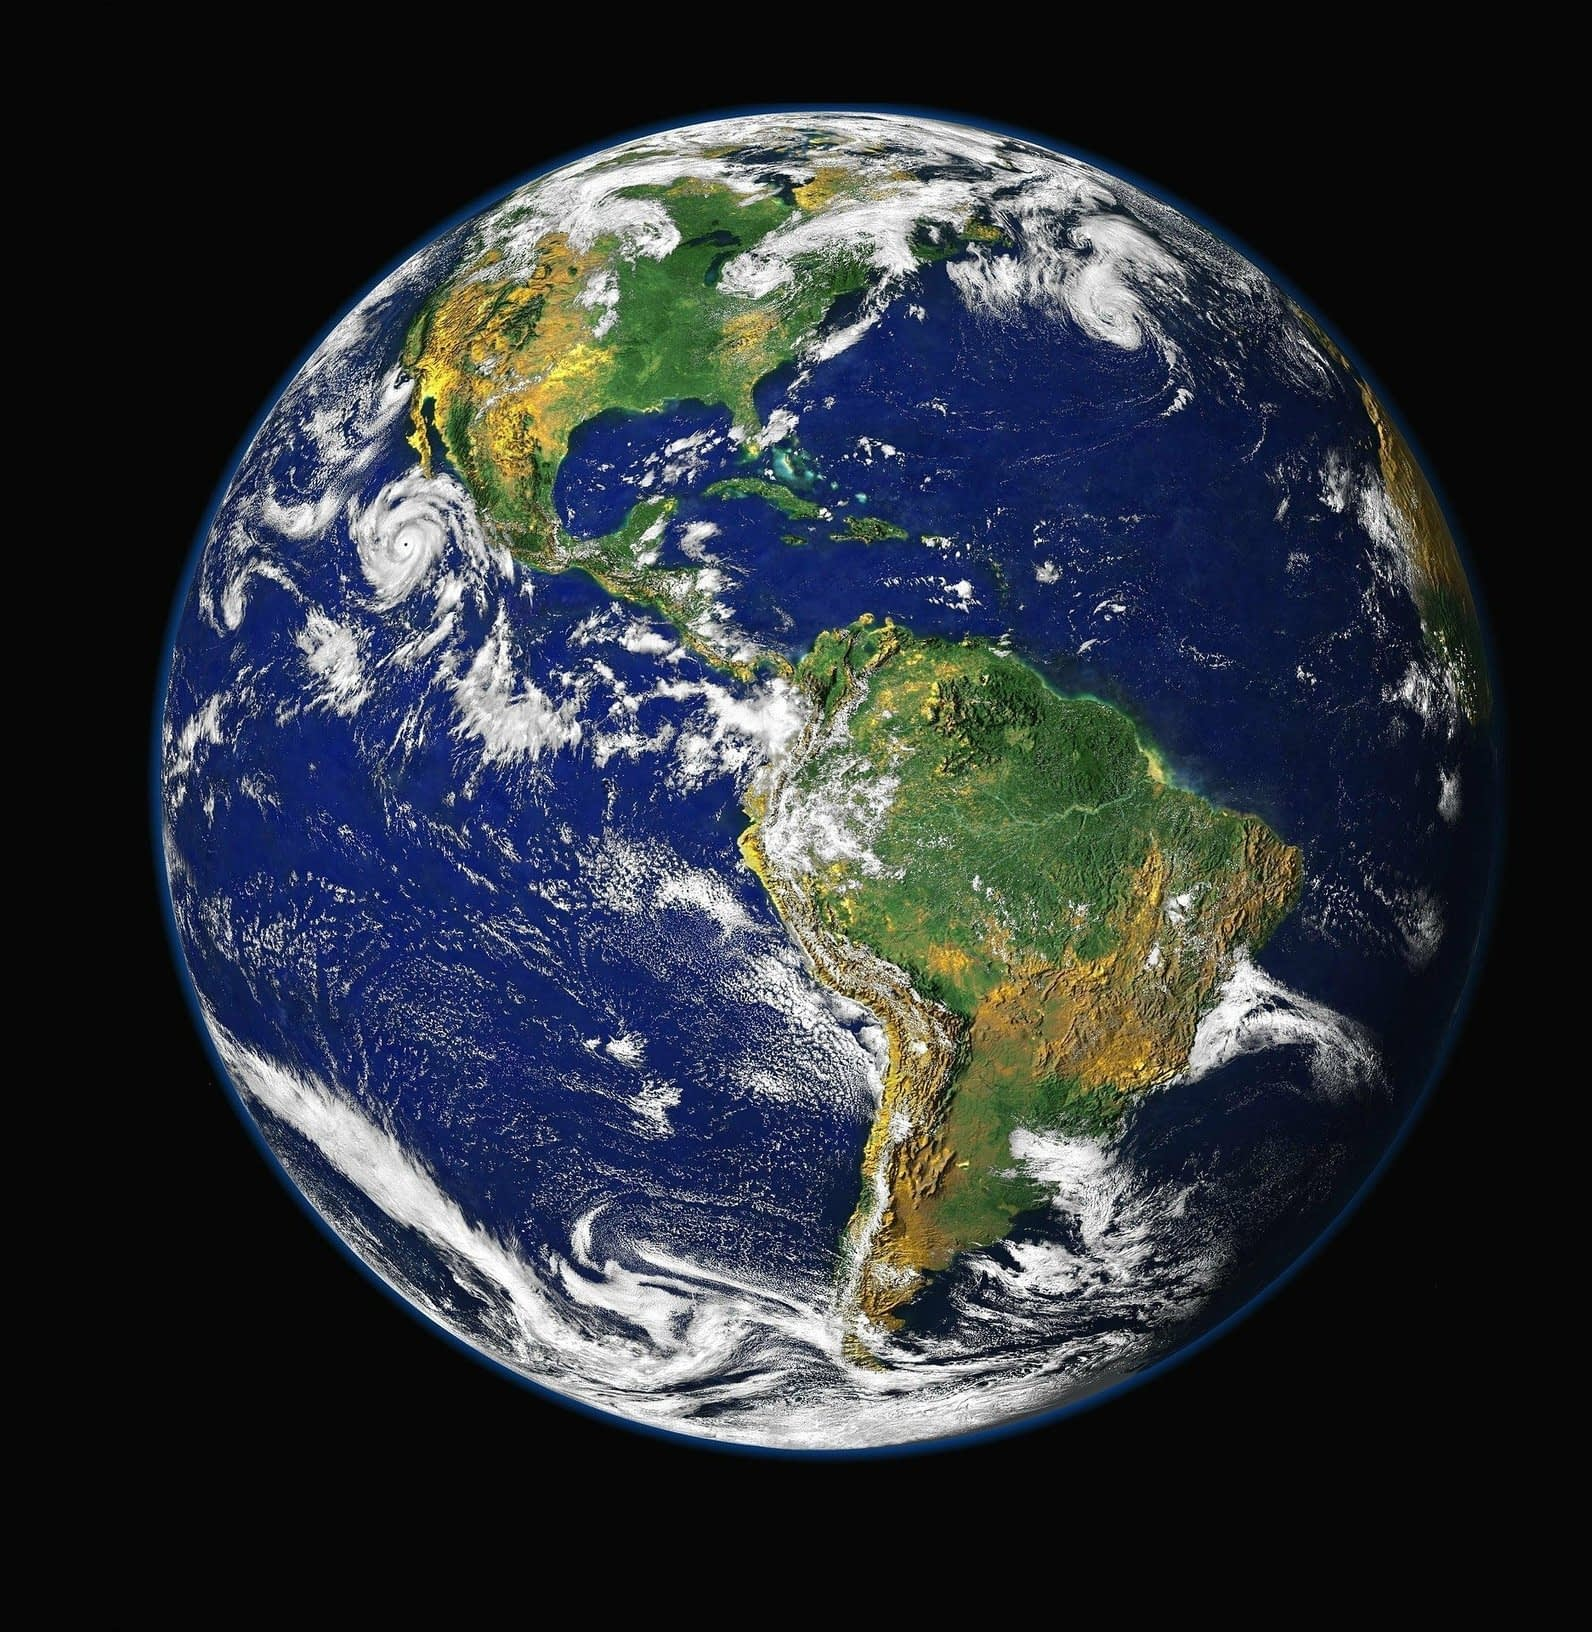 , Sustainability culture and rebuilding consensus on environmental policy, TheCircularEconomy.com